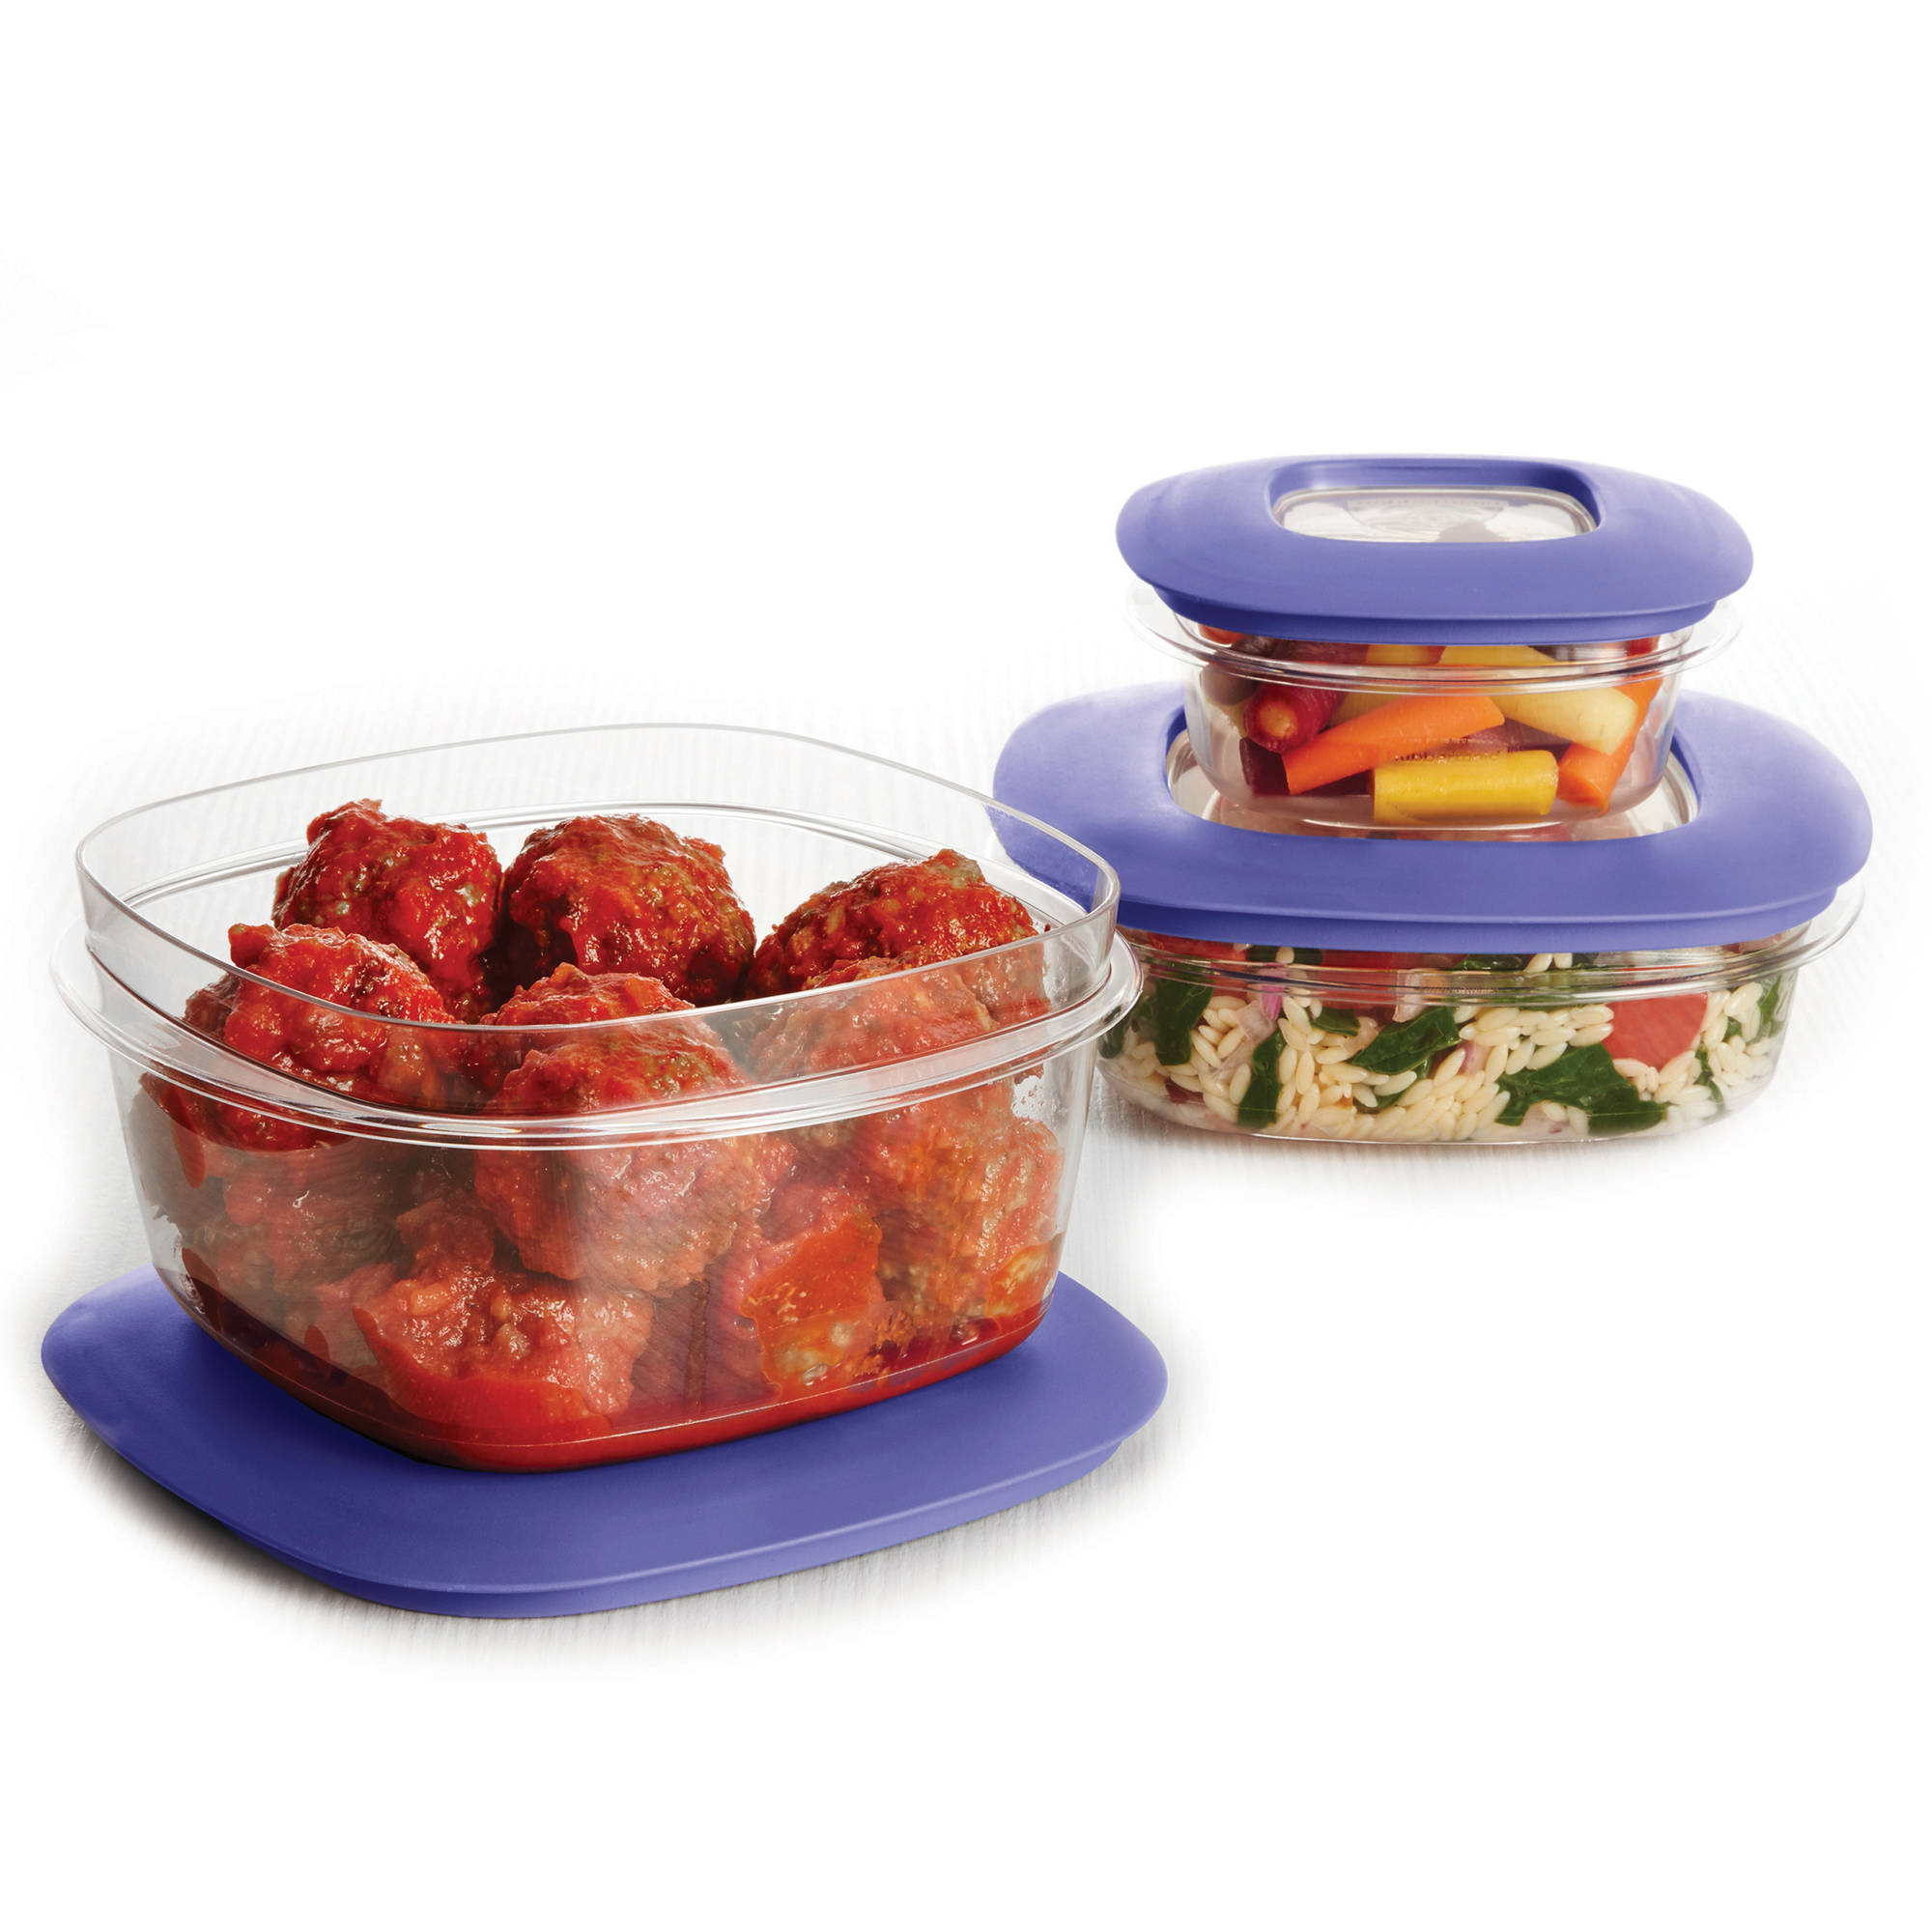 Newell Brands Rubbermaid Premier Food Storage Container, 6 - Piece Set, Iris